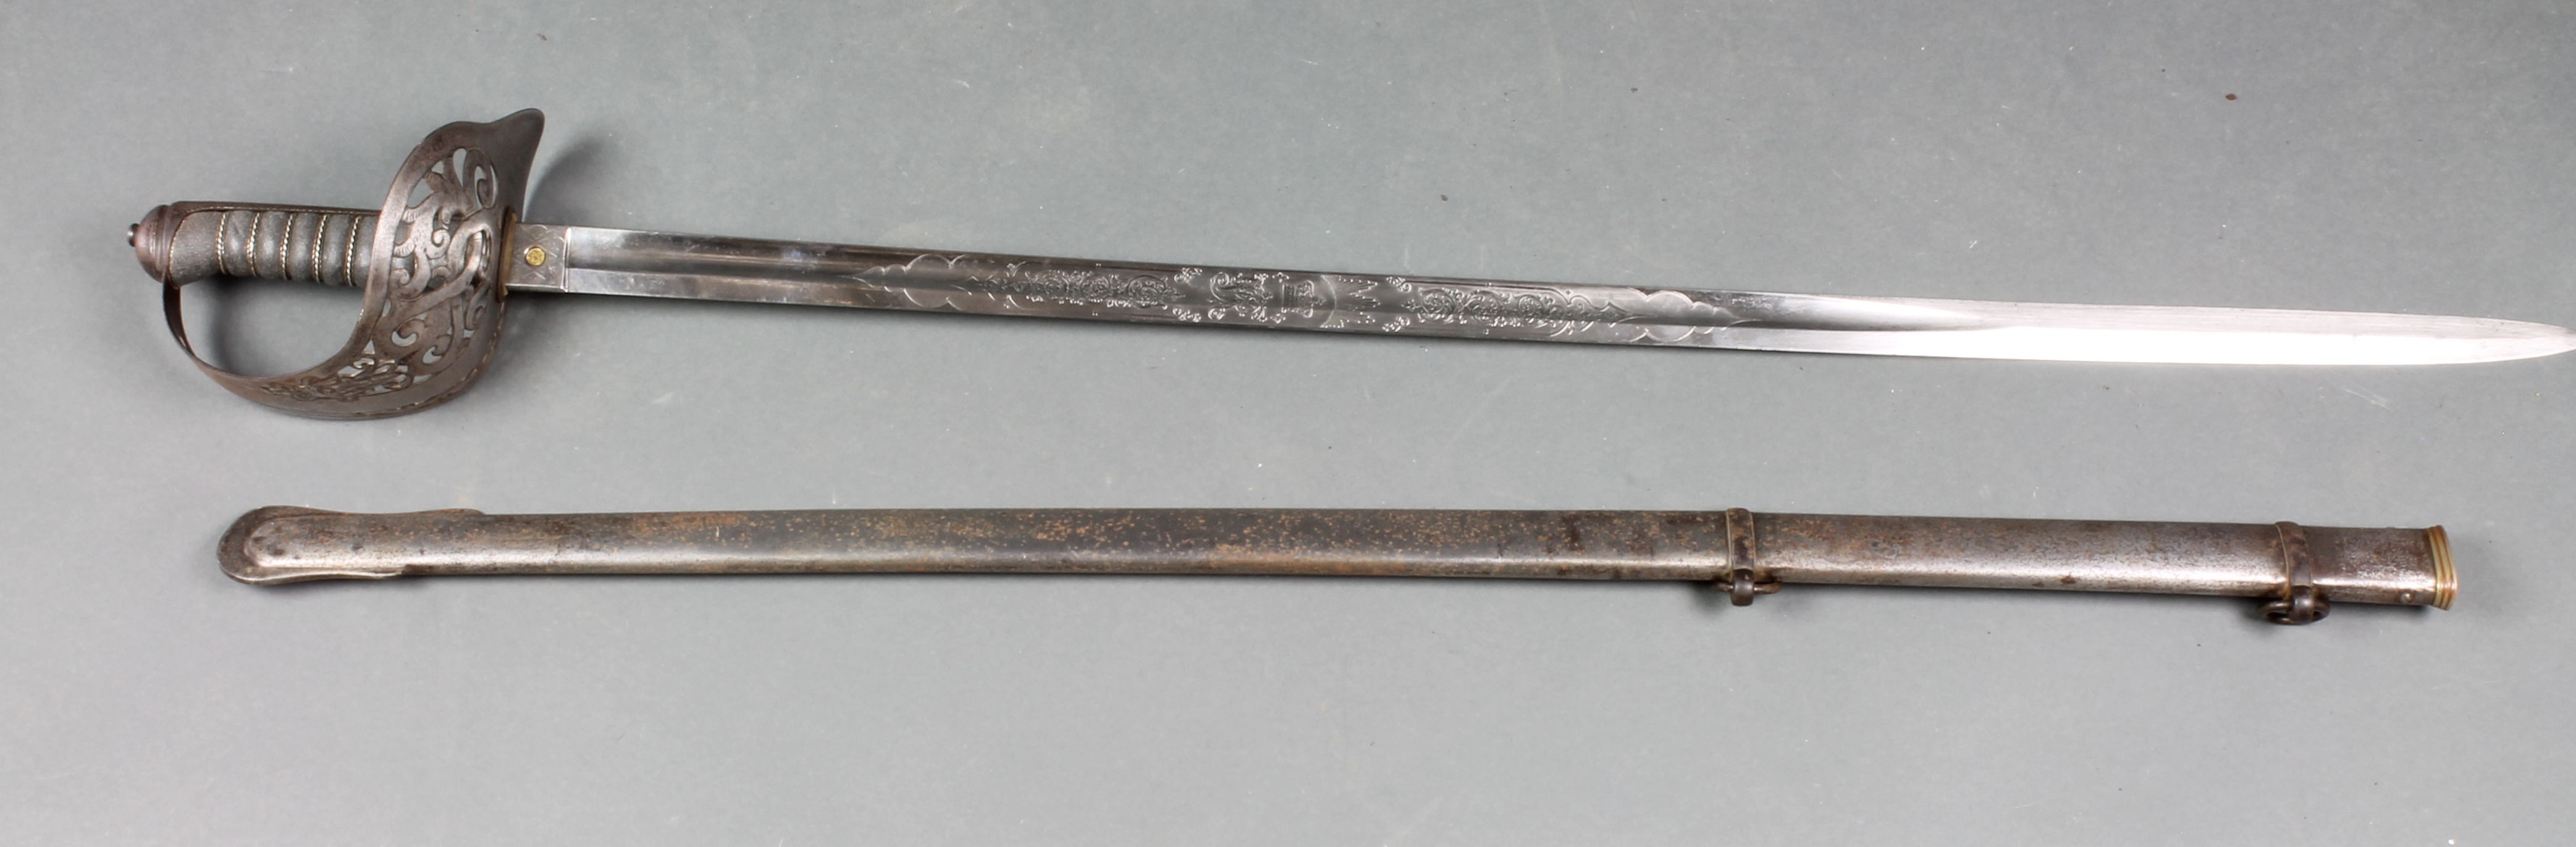 Lot 192, An 1897 pattern Henry Wilkinson Victorian Infantry Officer's sword with etched blade marked 16058 complete with scabbard, est £100 - 150